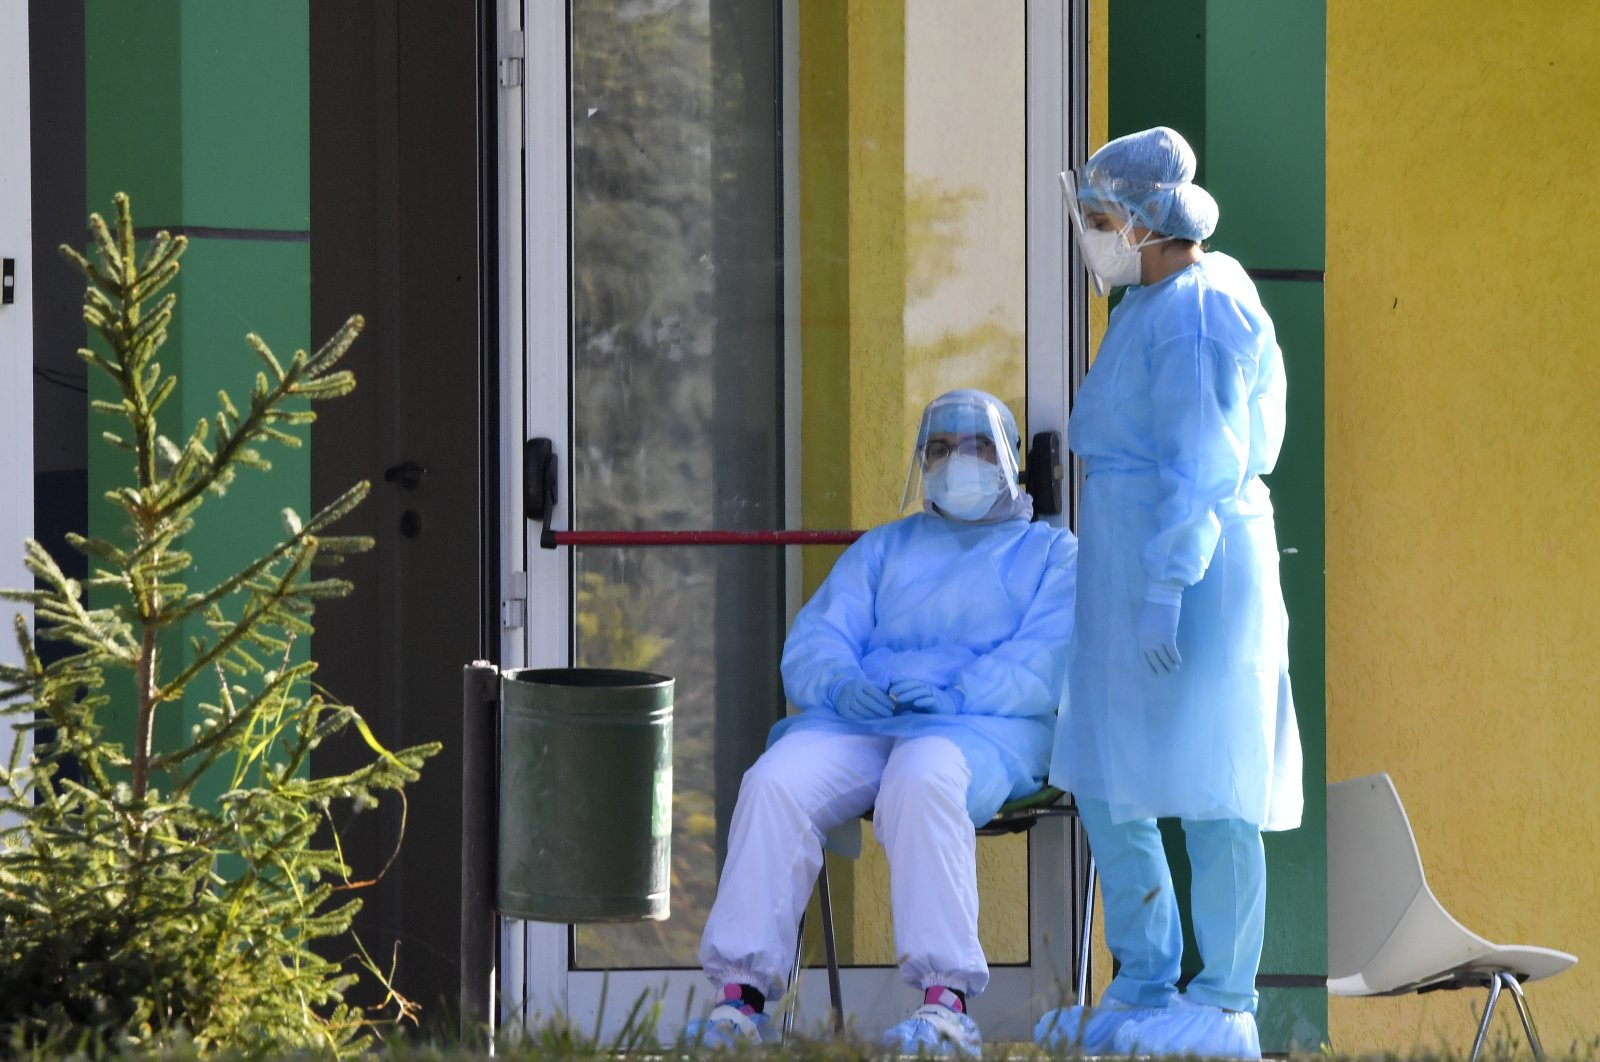 Medical staff wearing personal protective equipment (PPE) take a rest outside of the children's hospital Kozle in Skopje, Republic of North Macedonia, Nov. 19, 2020. (EPA Photo)